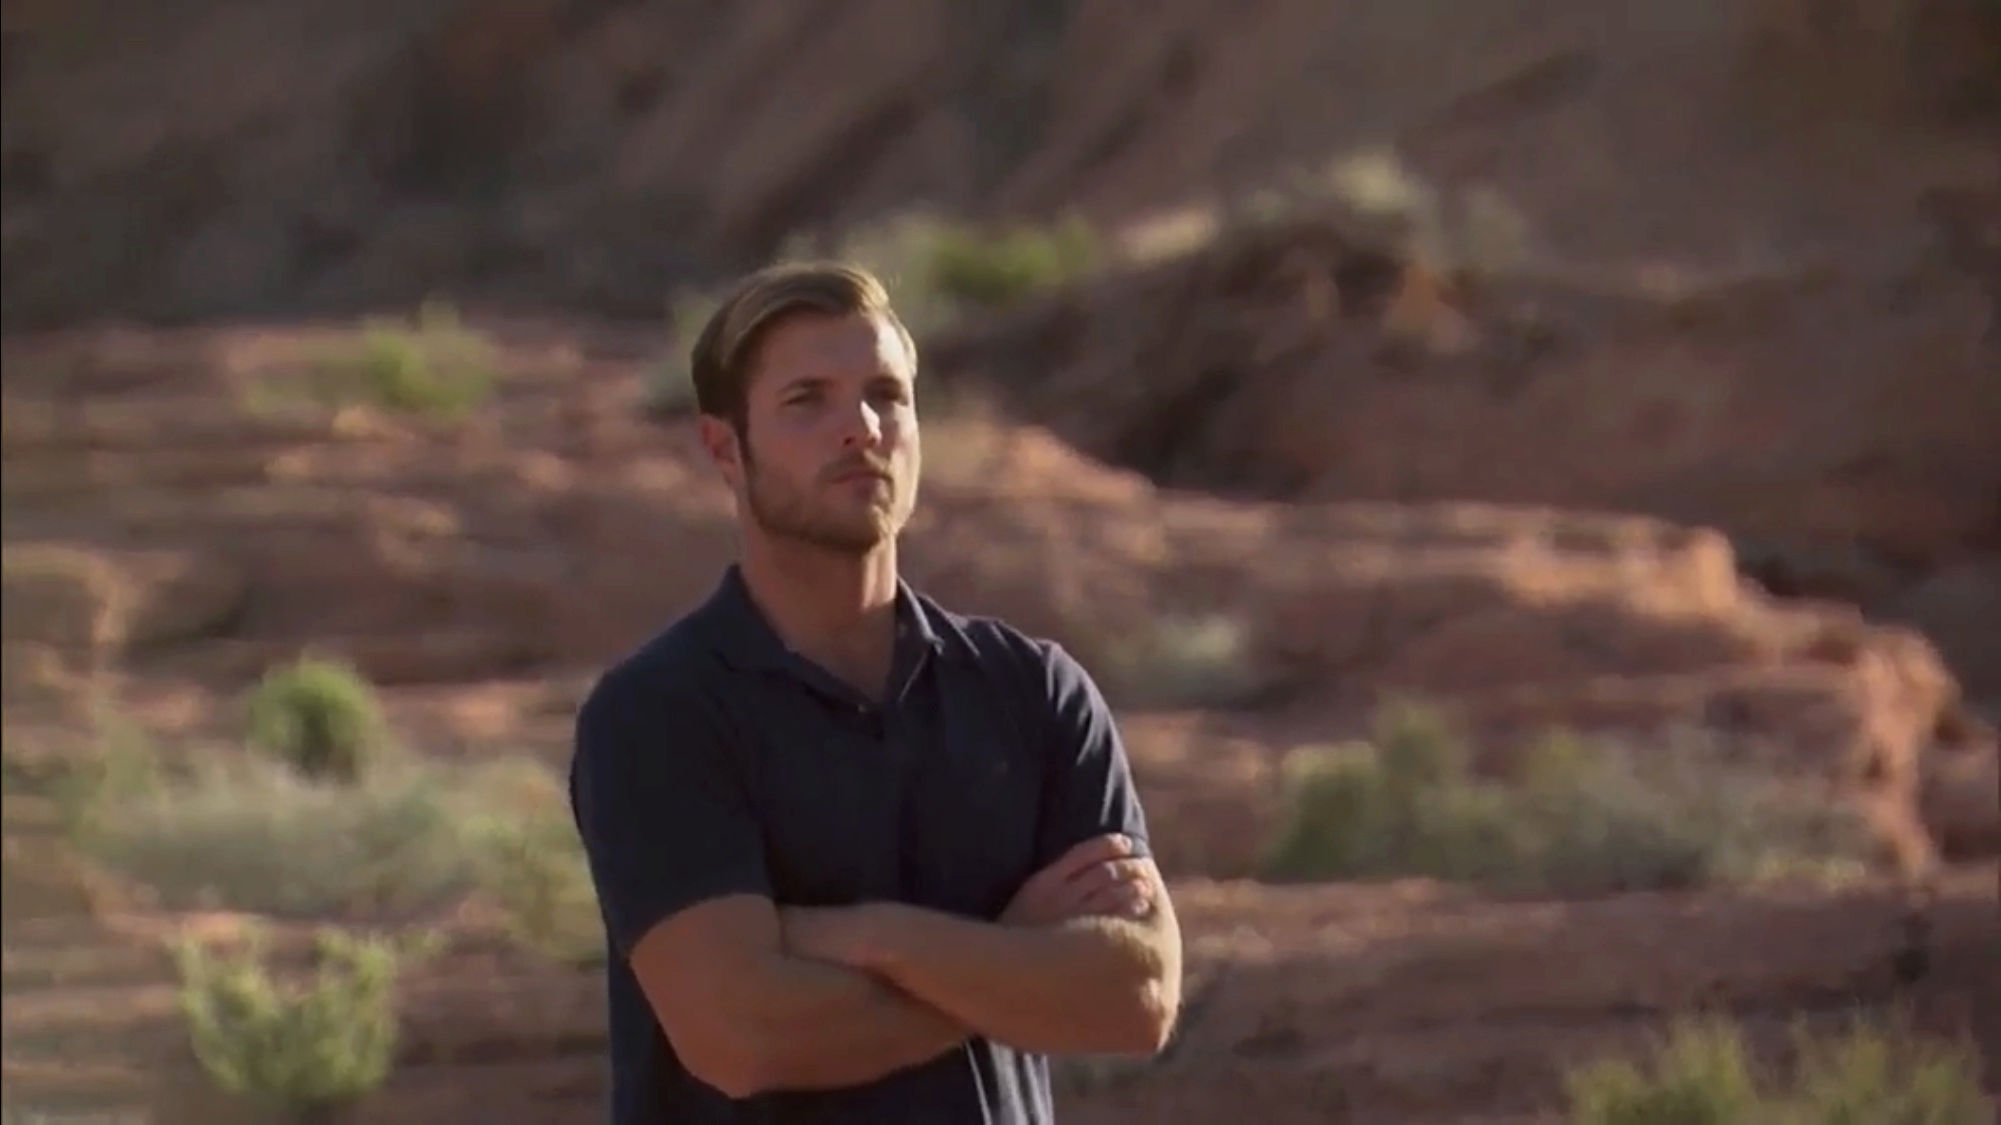 Bachelorette 14 - Becca Kufrin - ScreenCaps - NO Discussion - *Sleuthing Spoilers* 163a3a10